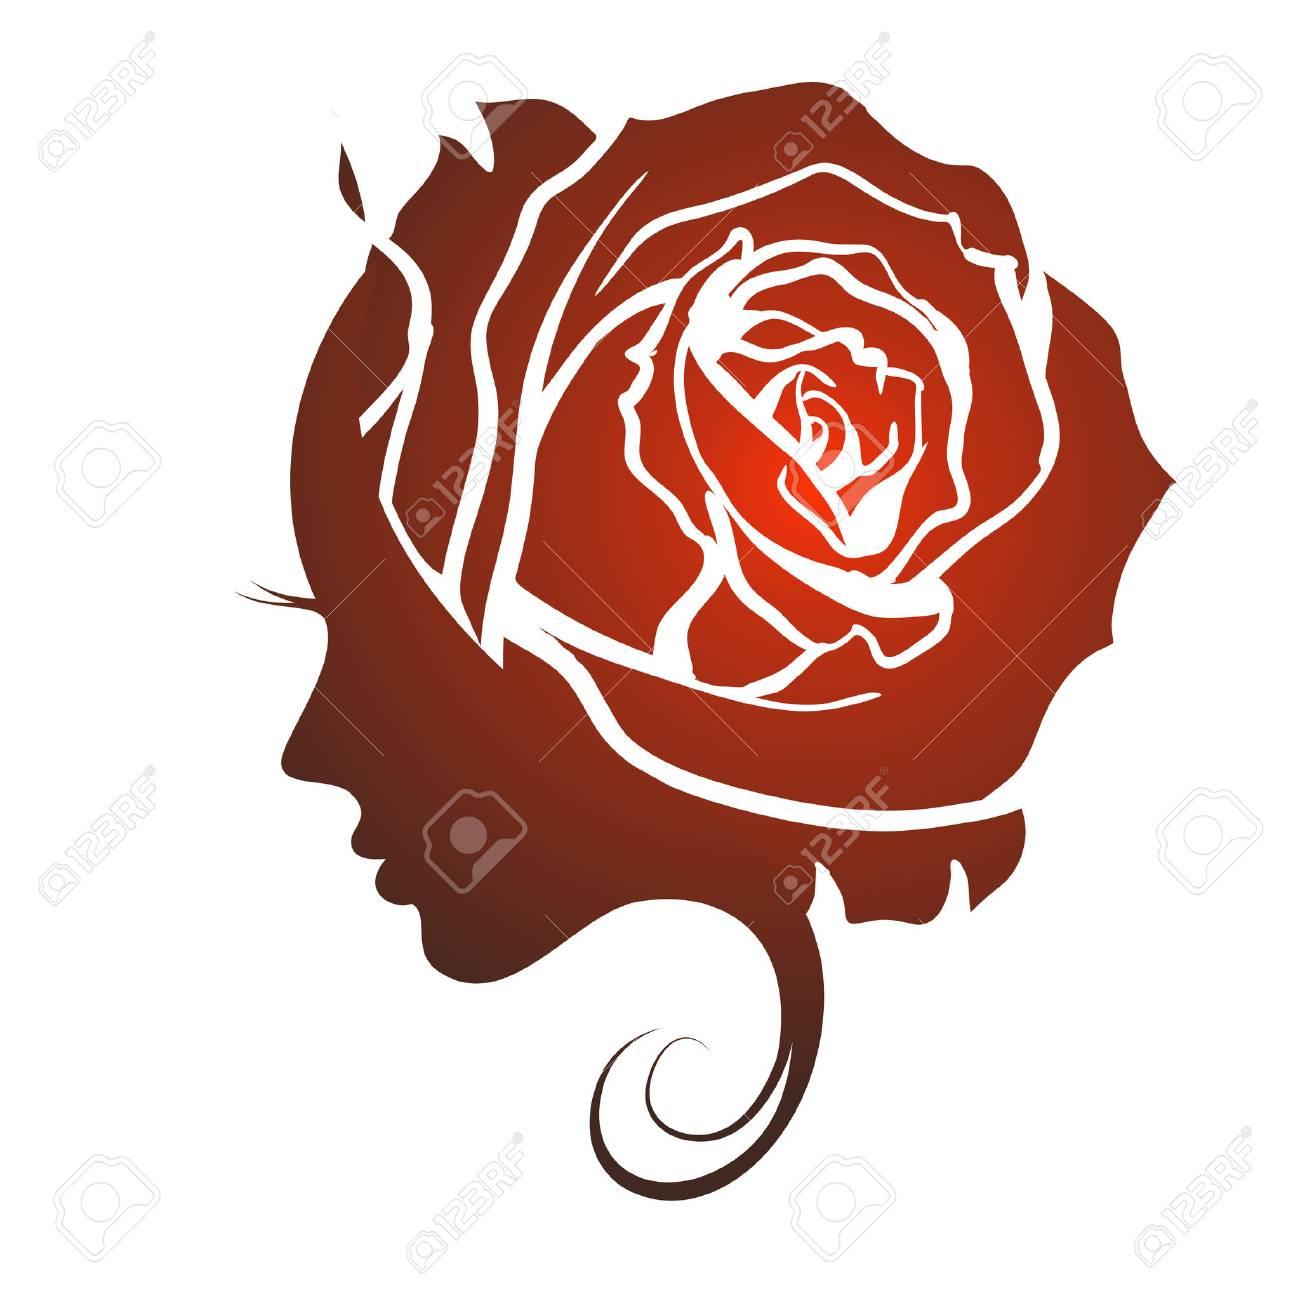 Female profile face in rose flower shape. Woman with rose petals in hair. Vector beauty floral logo, sign, label design. Concept for beauty salon, massage, spa, natural cosmetics, hairstyle. - 69427149